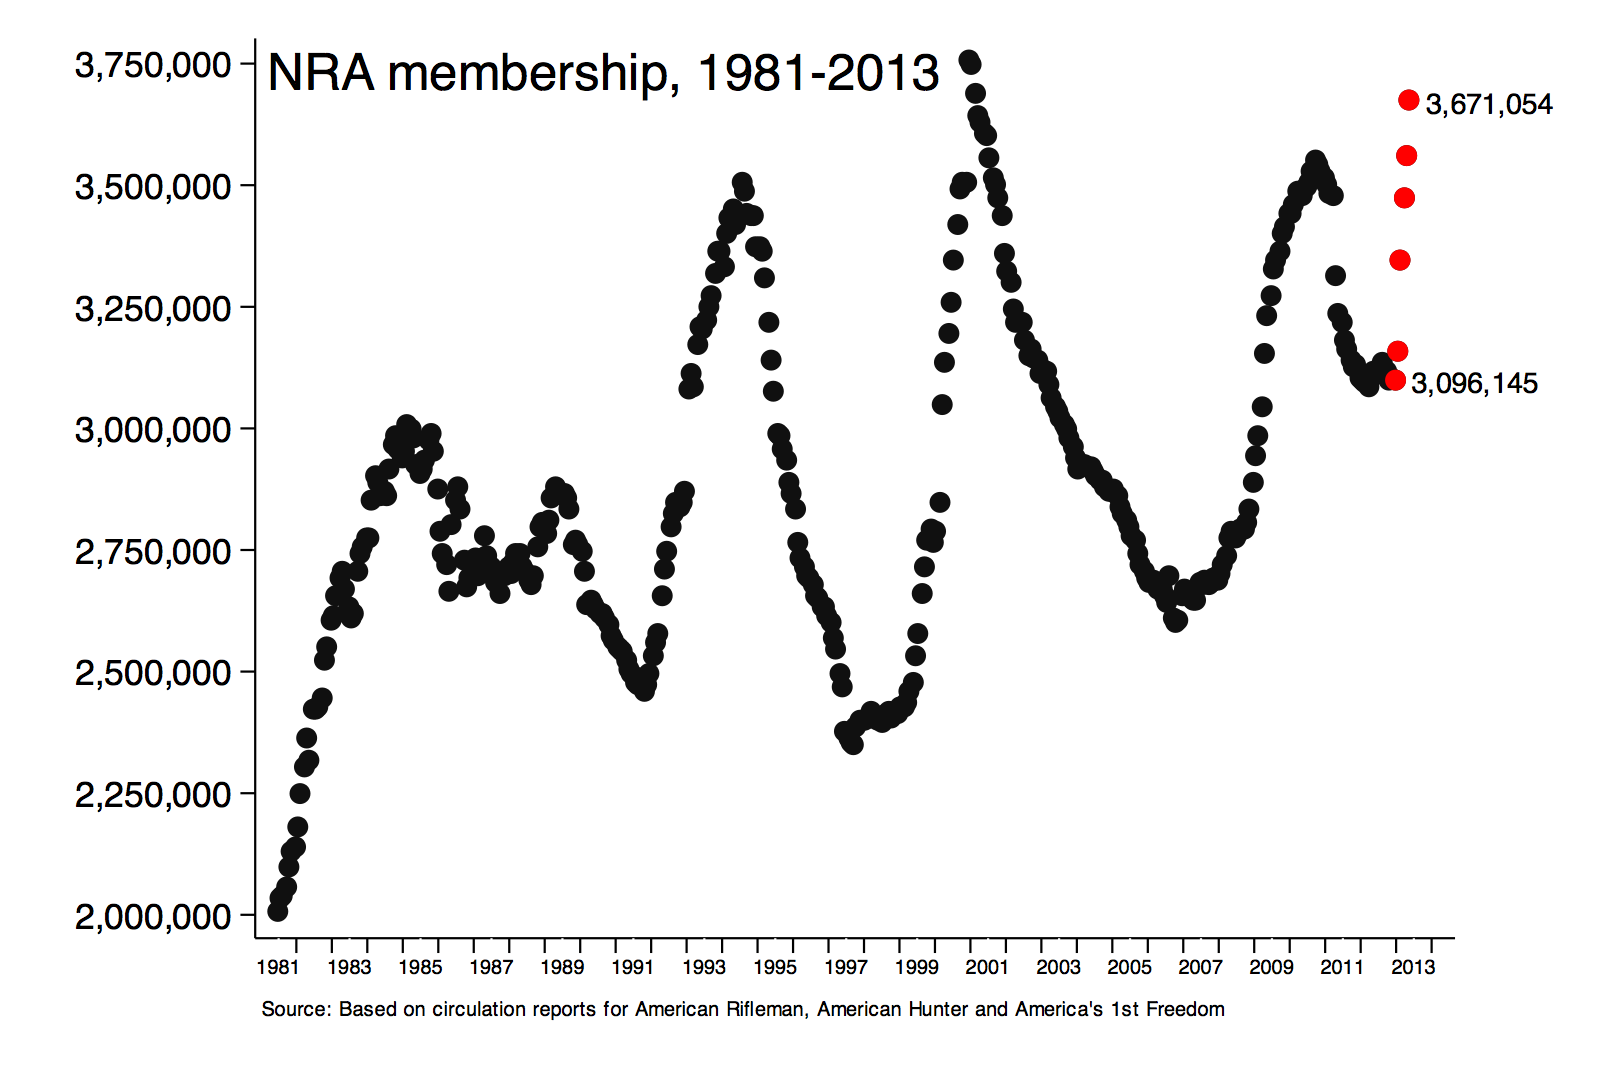 YOU ARE THE NRA